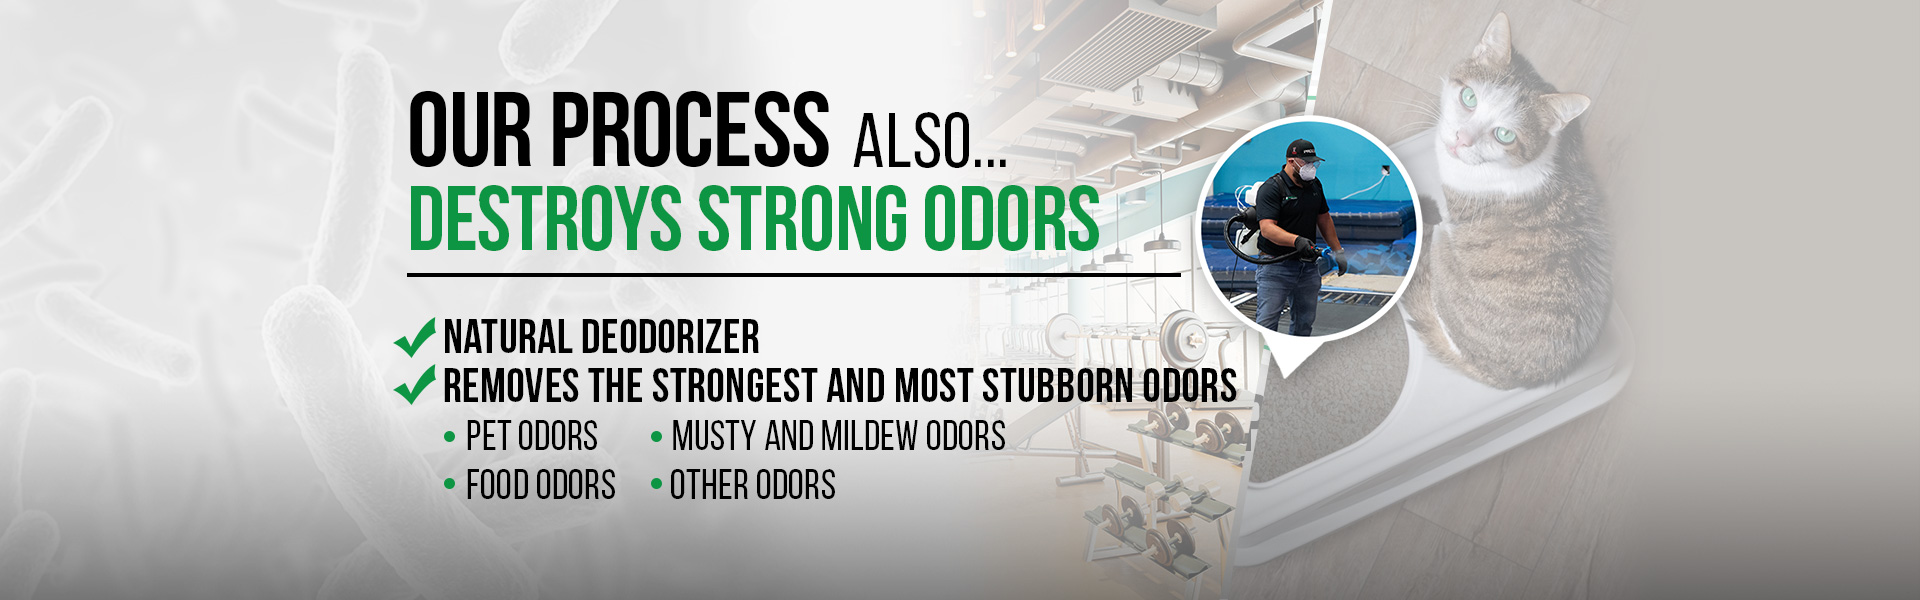 Our 4 Step Process Destroys Strong Odors